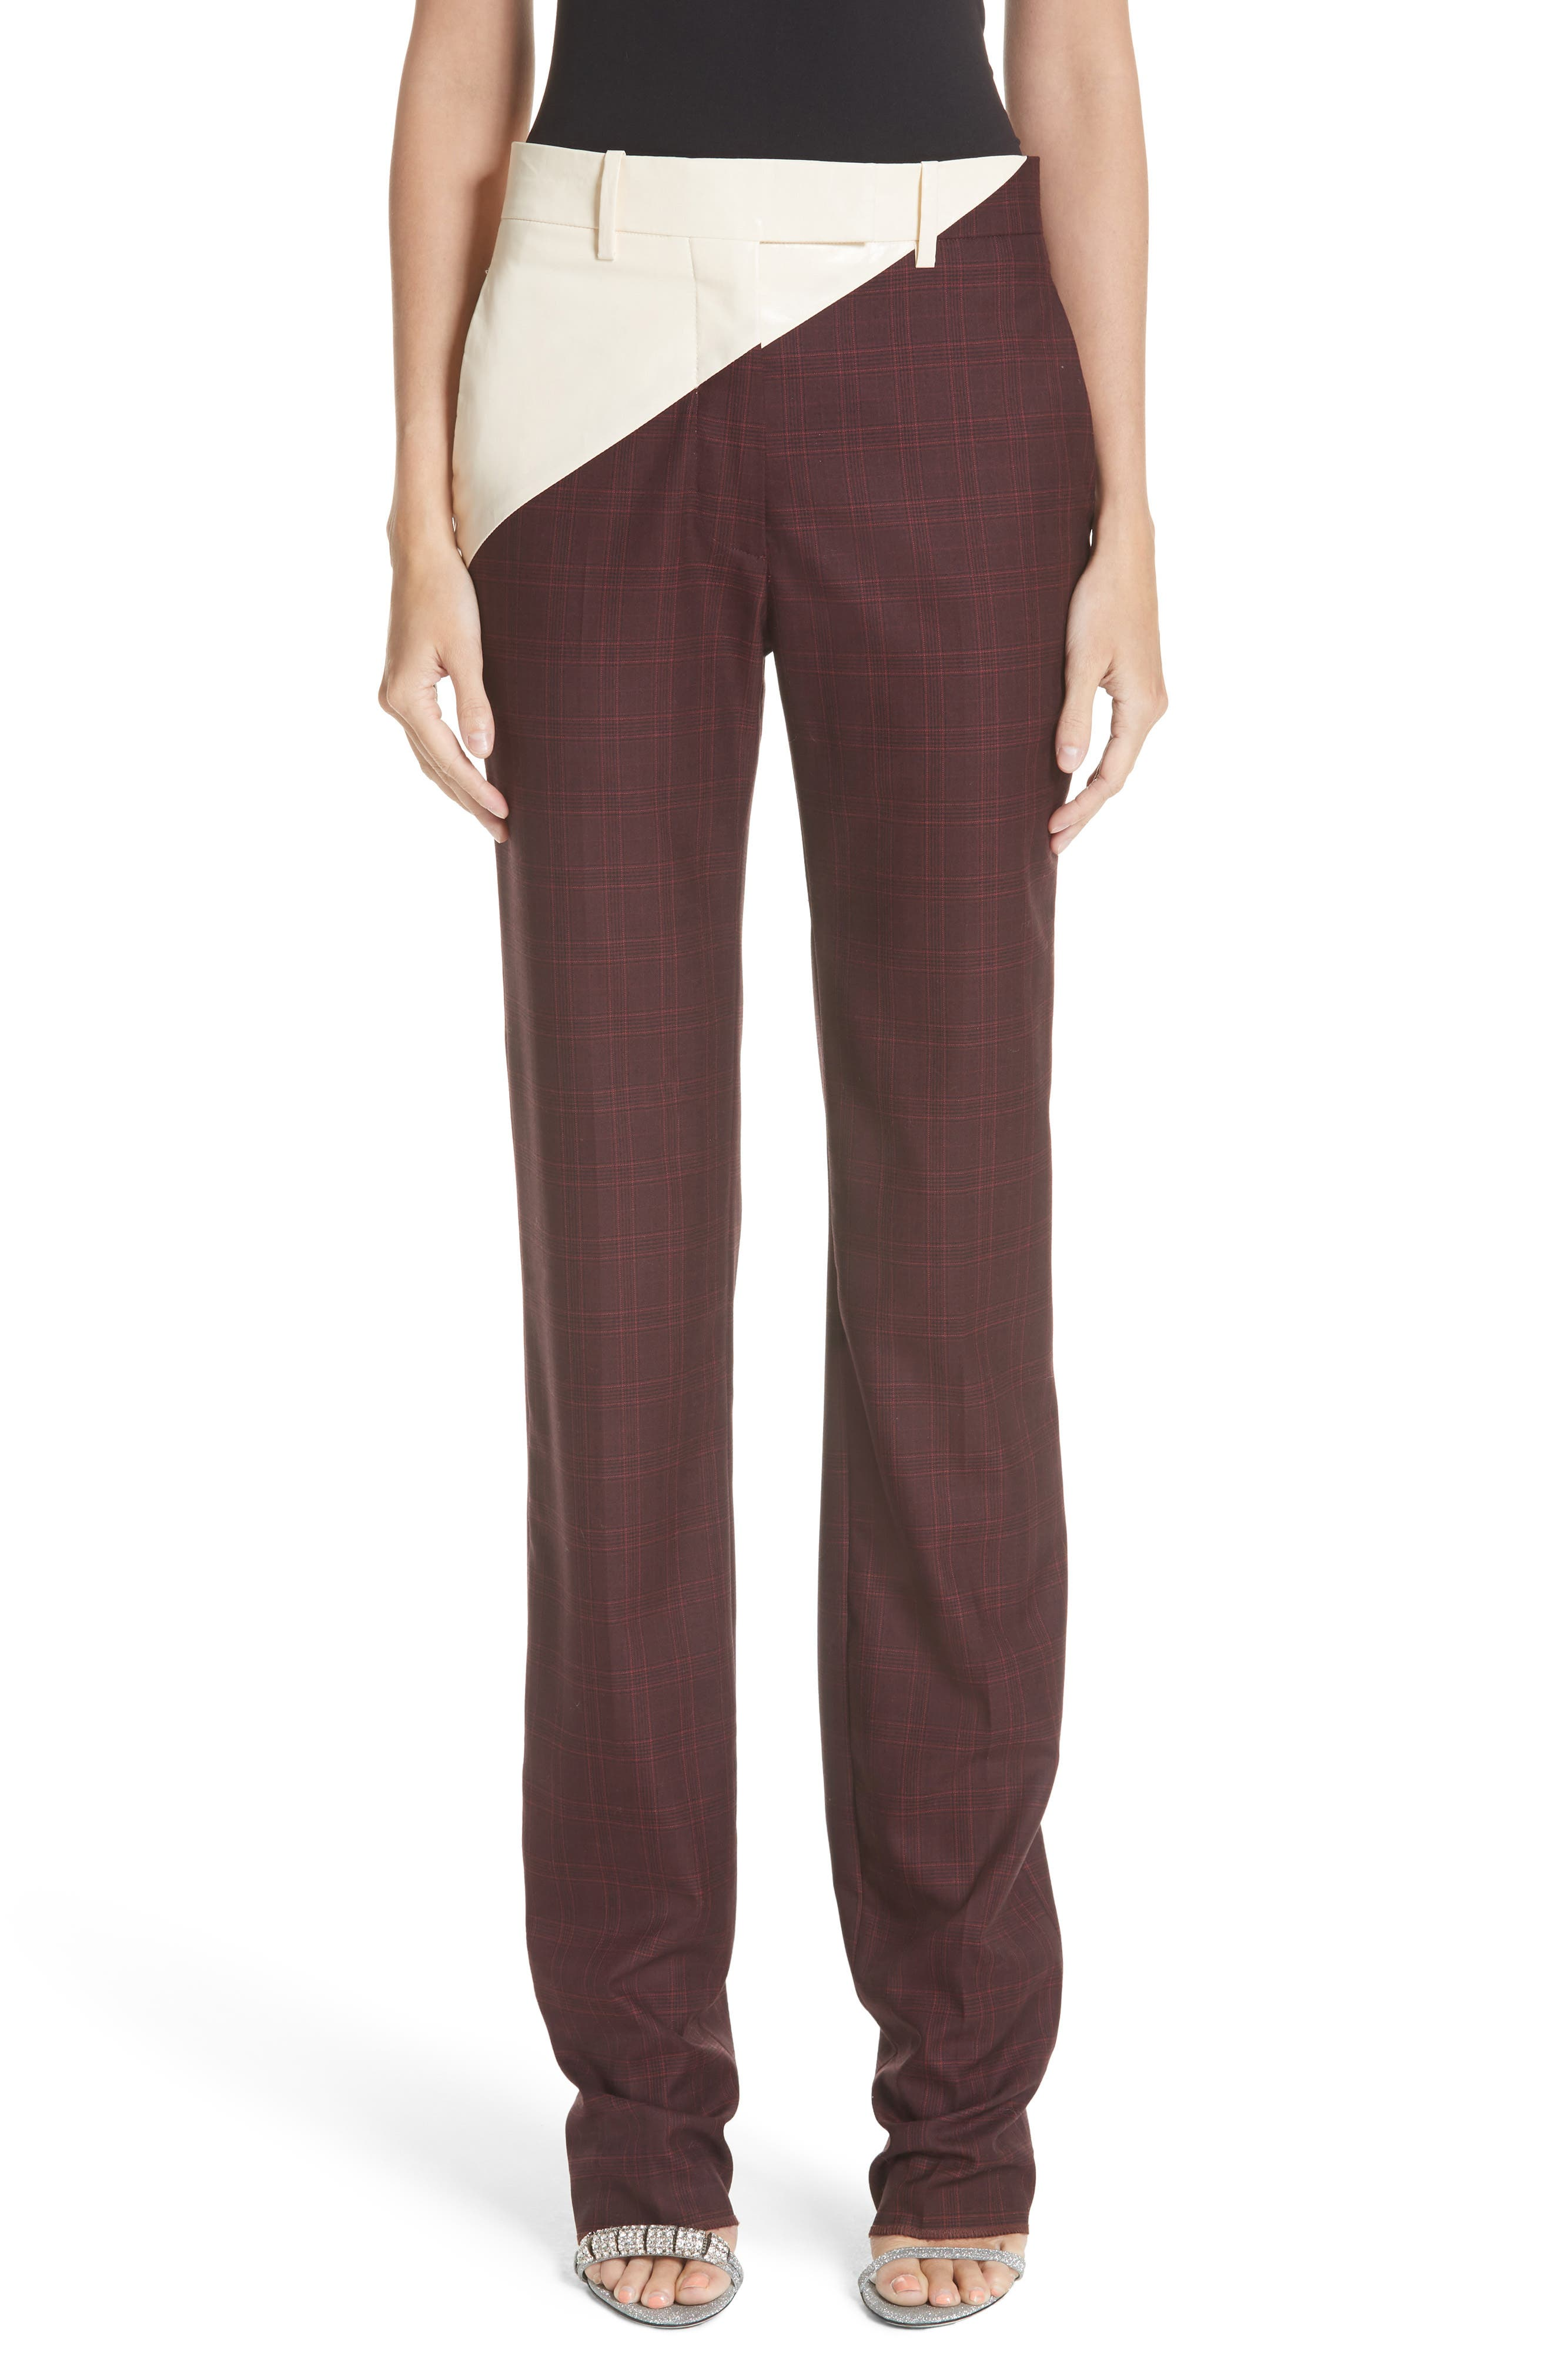 Calvin Klein 205w39nyc Wear To Where Looks For Every Occasion Bianca Top Leux Studio Silver L Women Nordstrom